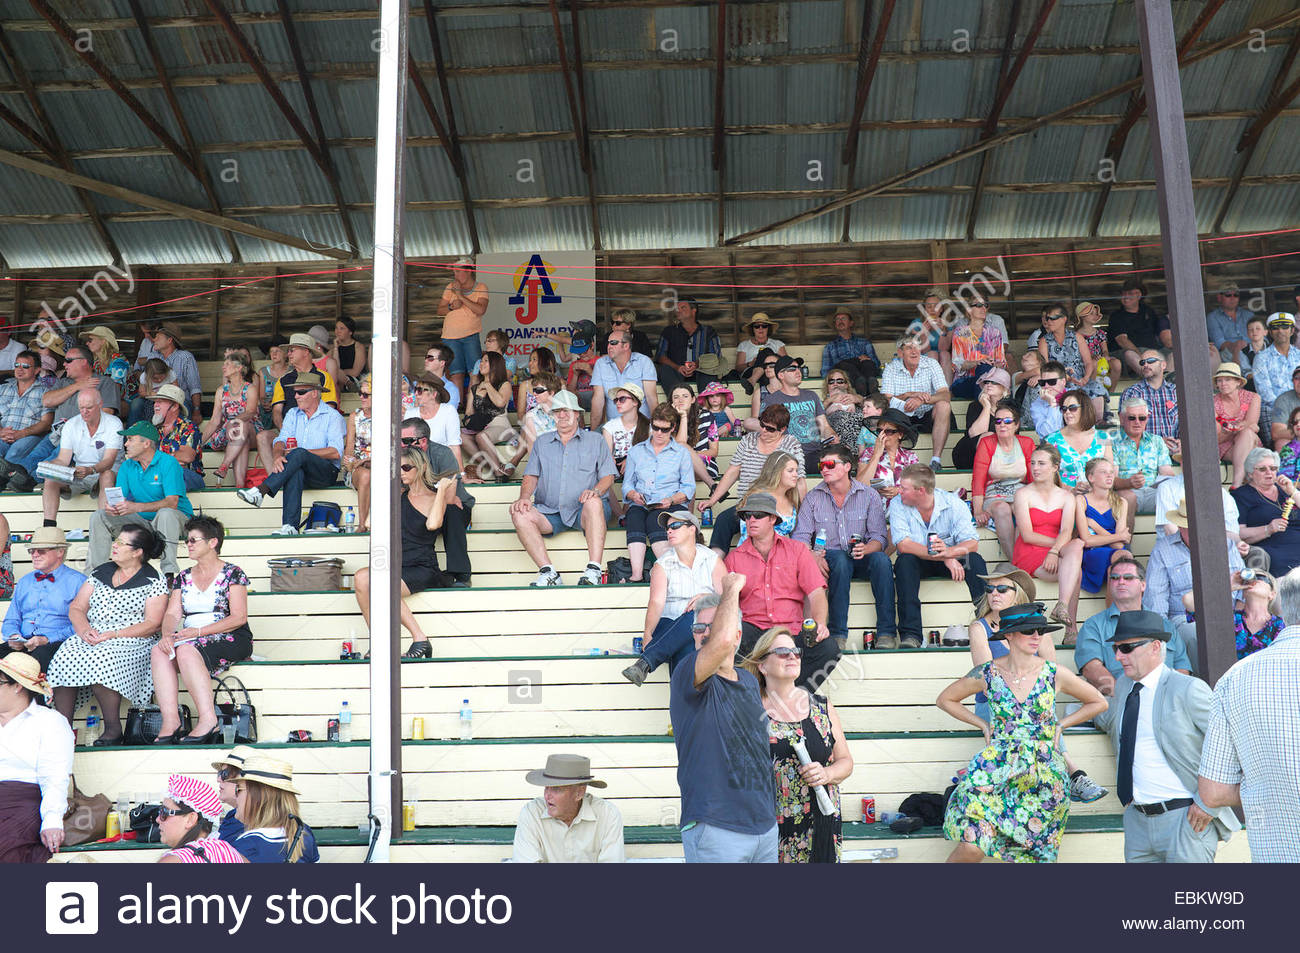 Spectators in the grandstand at the Adaminaby Races (horse racing), in the Snowy Mountains, New South Wales, Australia. - Stock Image